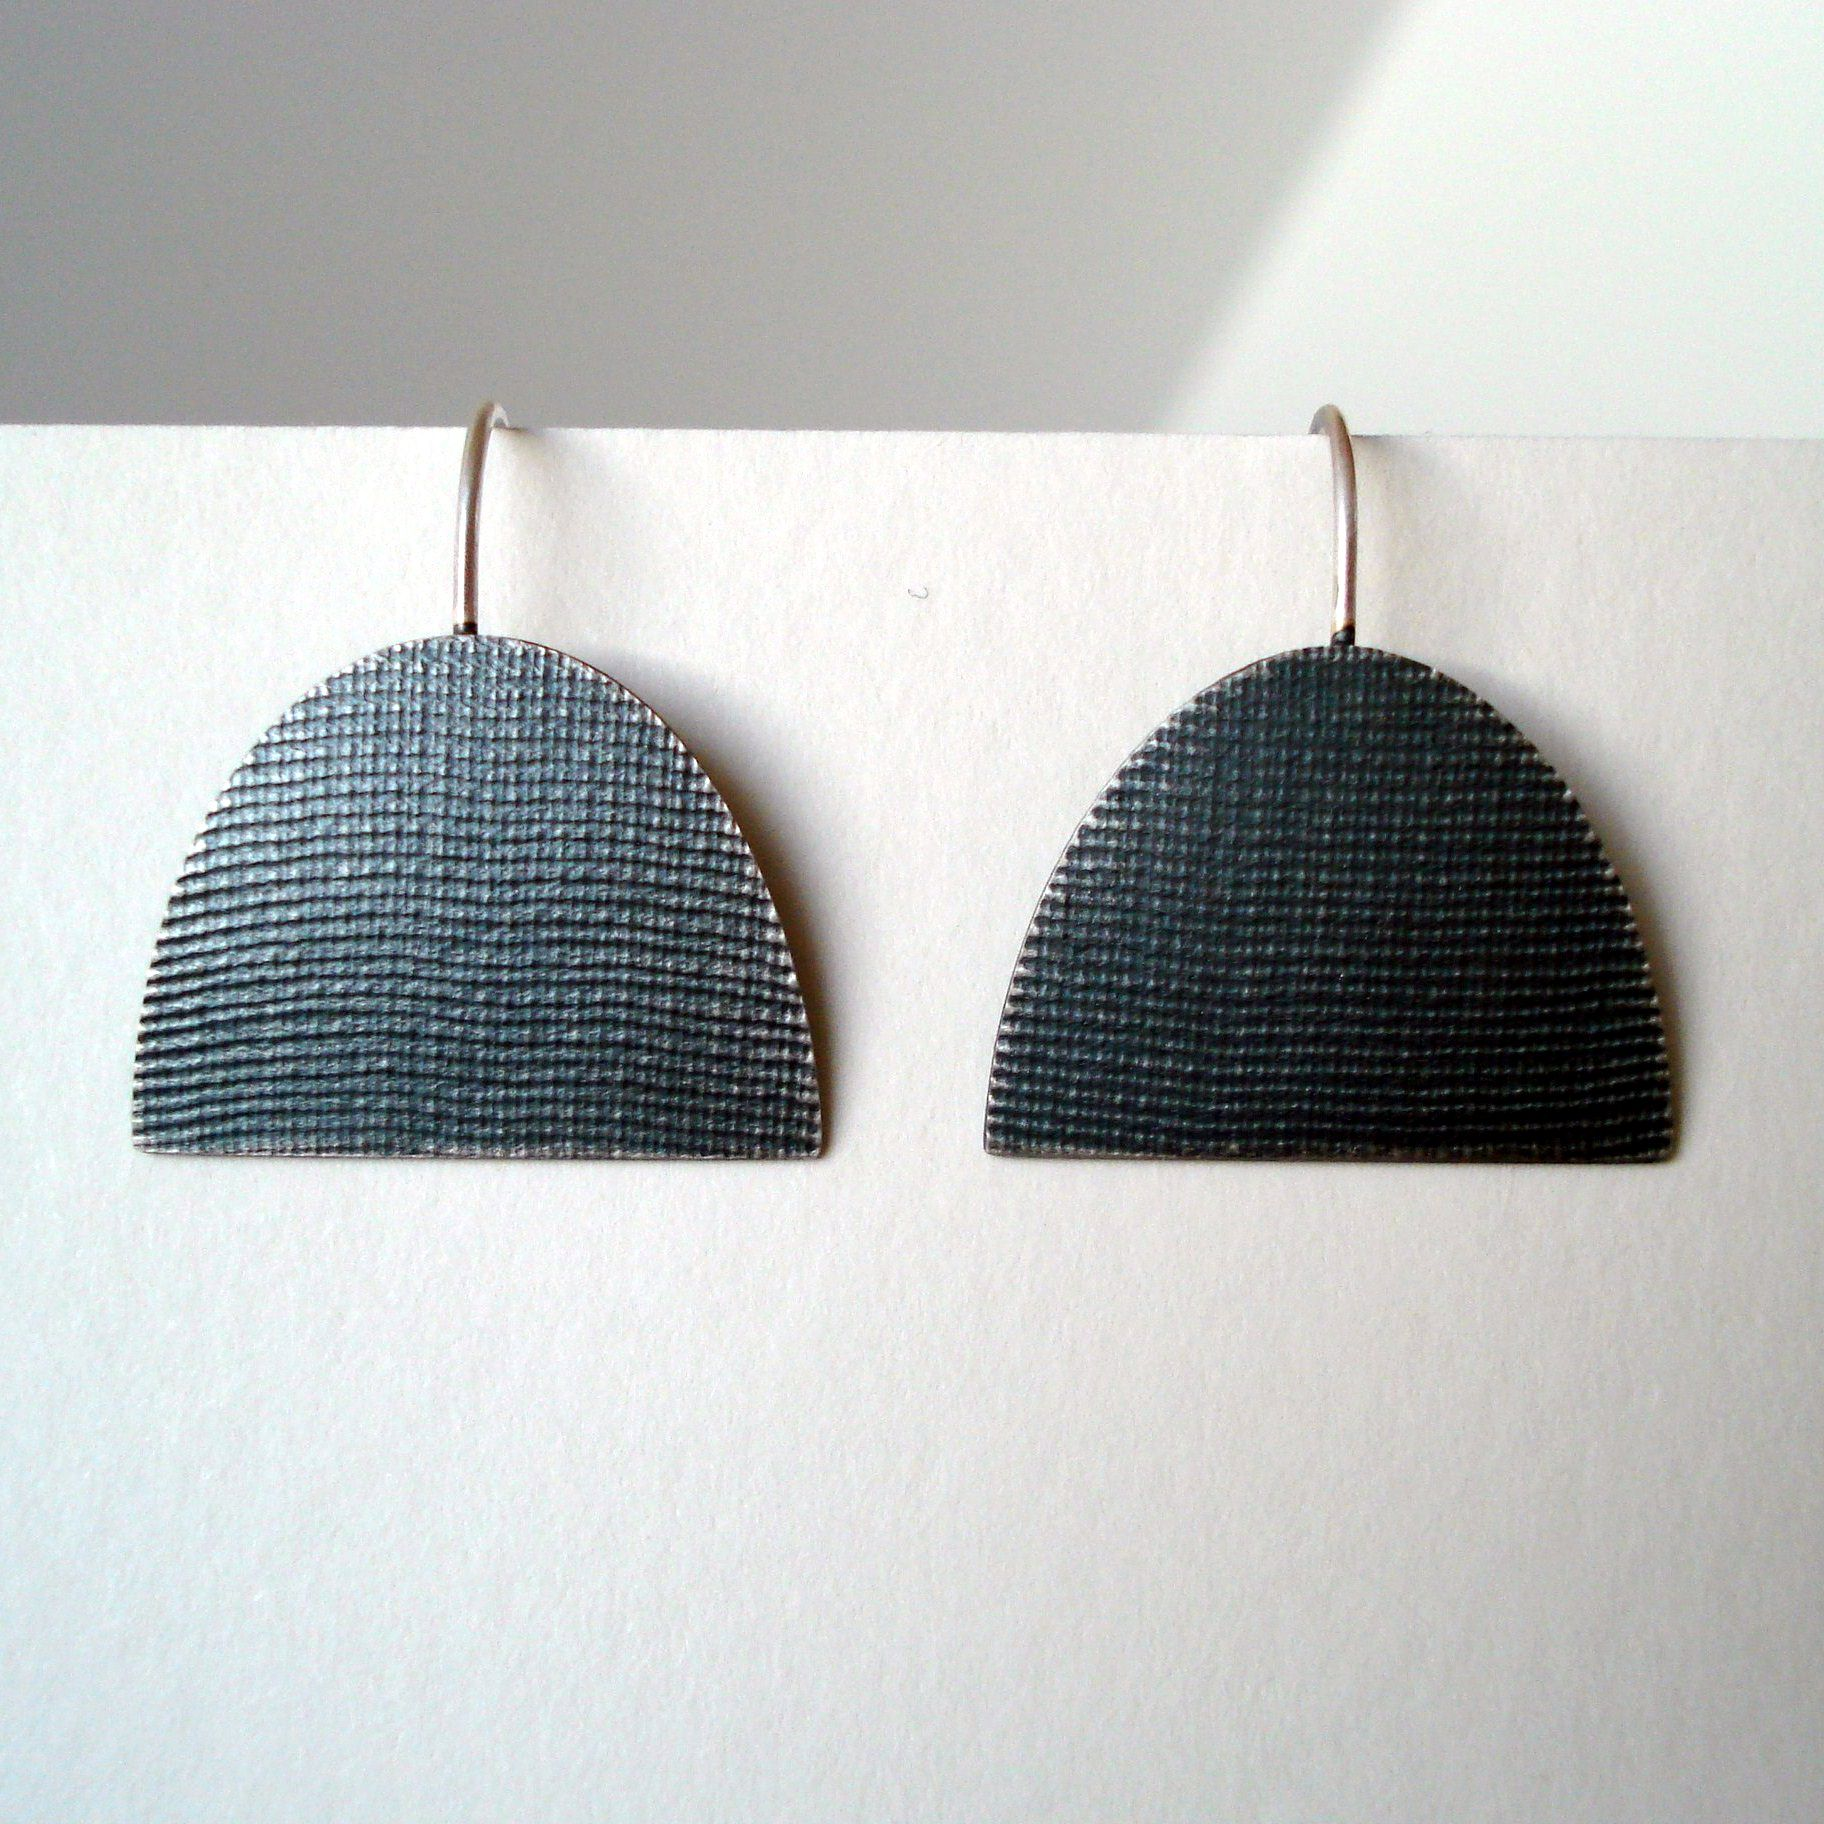 Large half oval oxidised earring   Contemporary Earrings by contemporary jewellery designer annabet wyndham